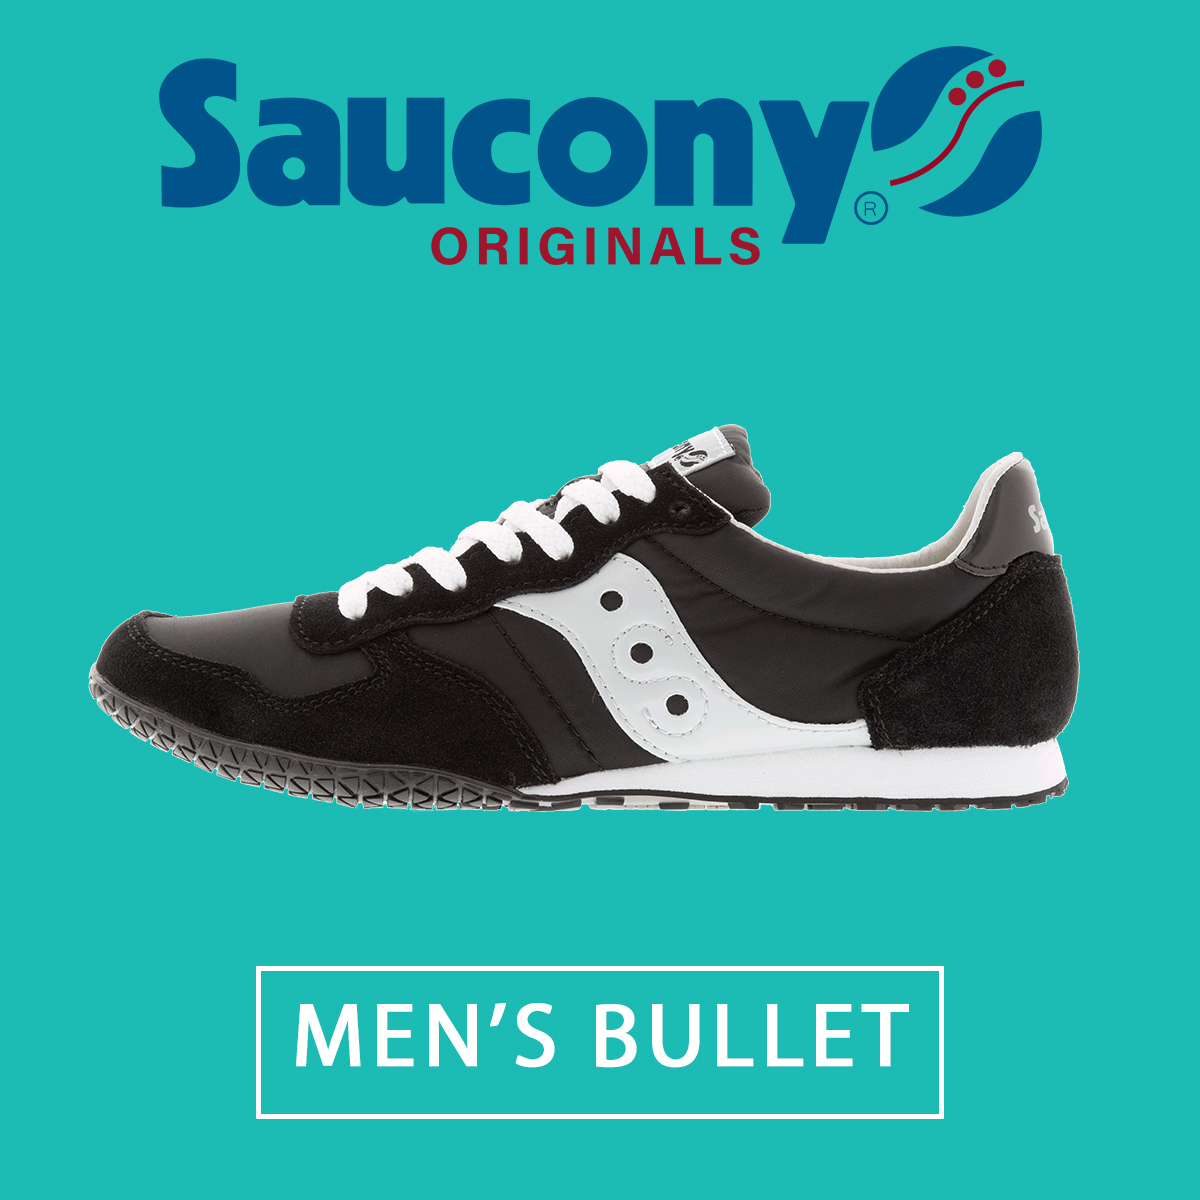 11fff9af Saucony Originals: Retro Runners — RW Beyond The Box